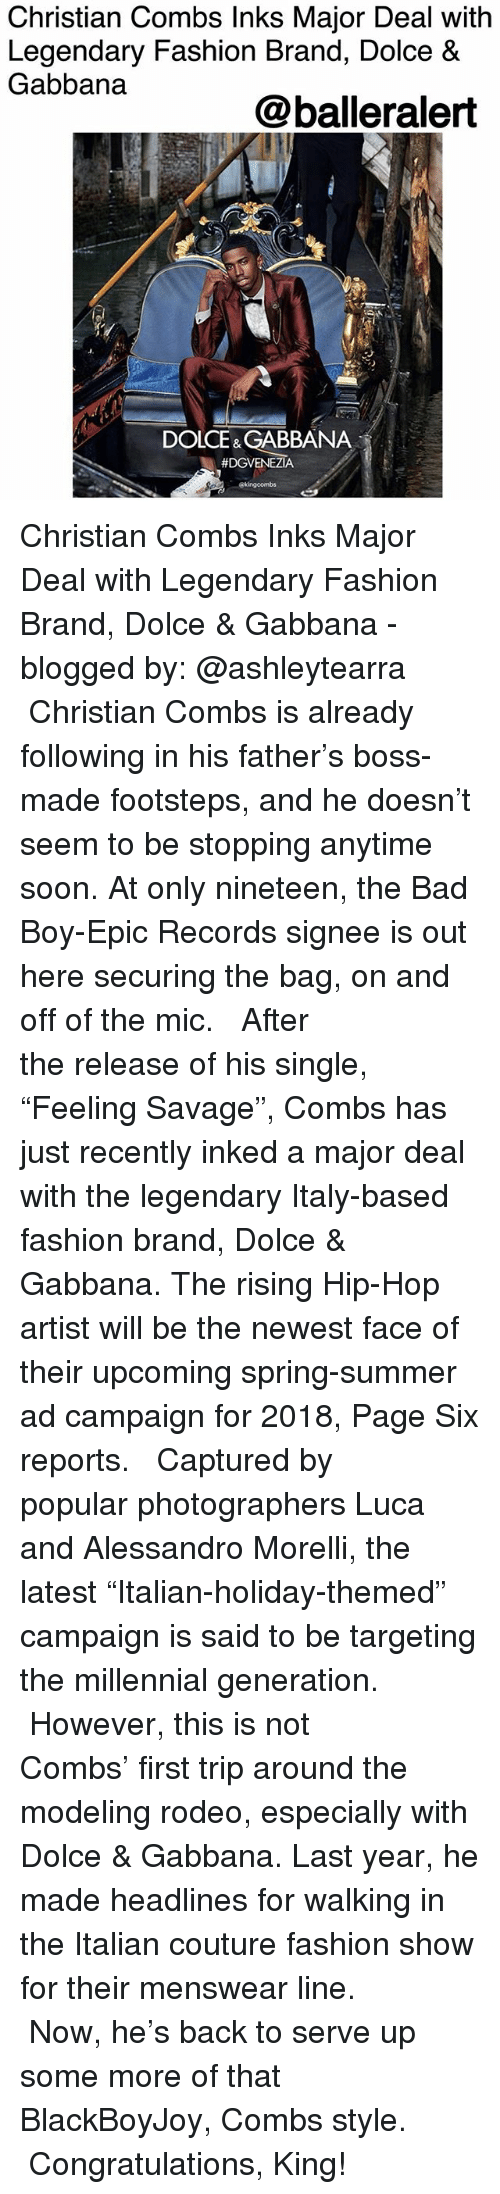 """Bad, Fashion, and Memes: Christian Combs Inks Major Deal with  Legendary Fashion Brand, Dolce &  Gabbana  @balleralert  DOLCE& GABBANA  Christian Combs Inks Major Deal with Legendary Fashion Brand, Dolce & Gabbana - blogged by: @ashleytearra ⠀⠀⠀⠀⠀⠀⠀ ⠀⠀⠀⠀⠀⠀⠀ Christian Combs is already following in his father's boss-made footsteps, and he doesn't seem to be stopping anytime soon. At only nineteen, the Bad Boy-Epic Records signee is out here securing the bag, on and off of the mic. ⠀⠀⠀⠀⠀⠀⠀ ⠀⠀⠀⠀⠀⠀⠀ After the release of his single, """"Feeling Savage"""", Combs has just recently inked a major deal with the legendary Italy-based fashion brand, Dolce & Gabbana. The rising Hip-Hop artist will be the newest face of their upcoming spring-summer ad campaign for 2018, Page Six reports. ⠀⠀⠀⠀⠀⠀⠀ ⠀⠀⠀⠀⠀⠀⠀ Captured by popular photographers Luca and Alessandro Morelli, the latest """"Italian-holiday-themed"""" campaign is said to be targeting the millennial generation. ⠀⠀⠀⠀⠀⠀⠀ ⠀⠀⠀⠀⠀⠀⠀ However, this is not Combs' first trip around the modeling rodeo, especially with Dolce & Gabbana. Last year, he made headlines for walking in the Italian couture fashion show for their menswear line. ⠀⠀⠀⠀⠀⠀⠀ ⠀⠀⠀⠀⠀⠀⠀ Now, he's back to serve up some more of that BlackBoyJoy, Combs style. ⠀⠀⠀⠀⠀⠀⠀ ⠀⠀ Congratulations, King!"""